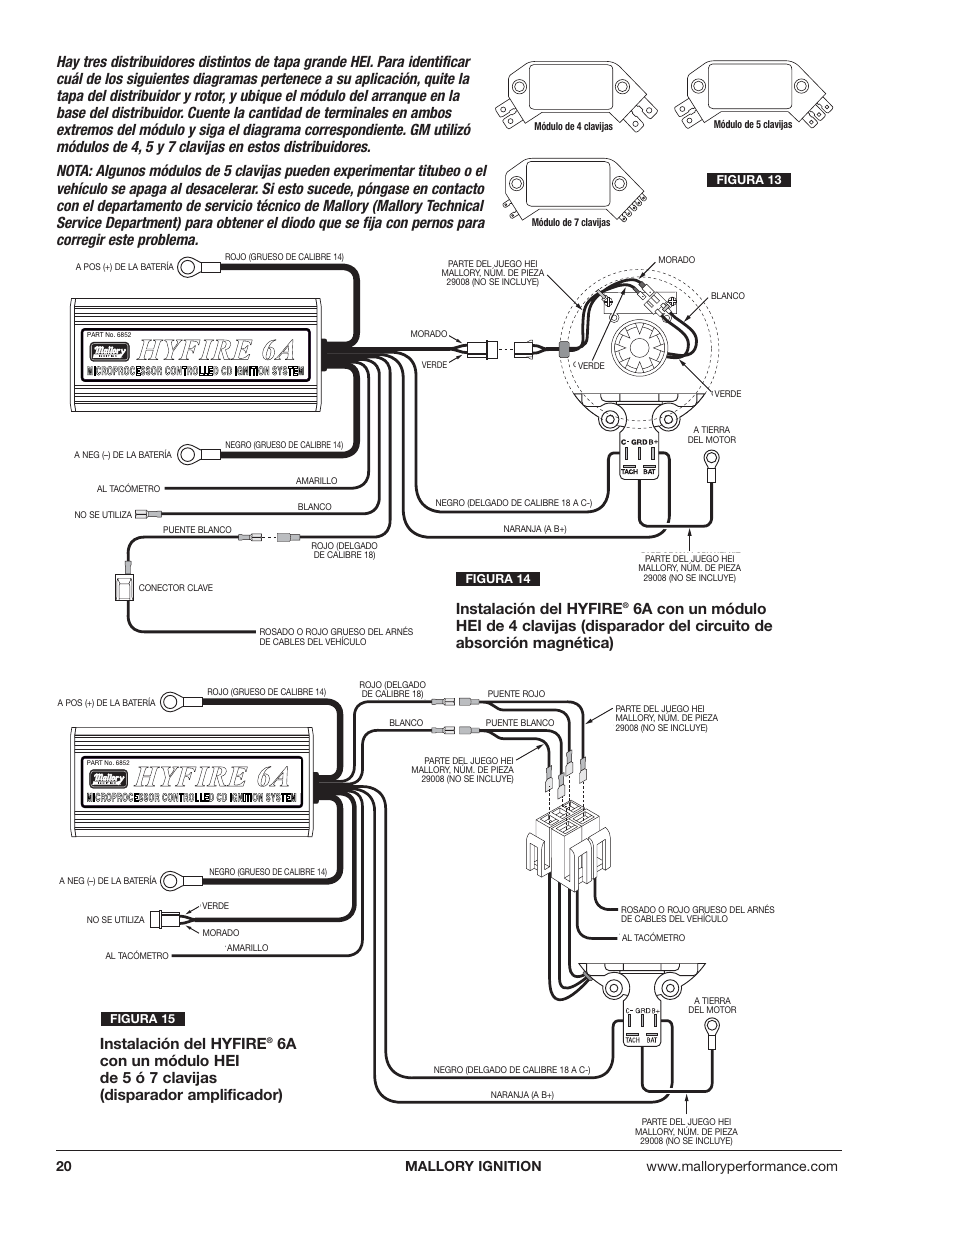 Mallory Ignition Hyfire Wiring Diagram - list of schematic circuit on